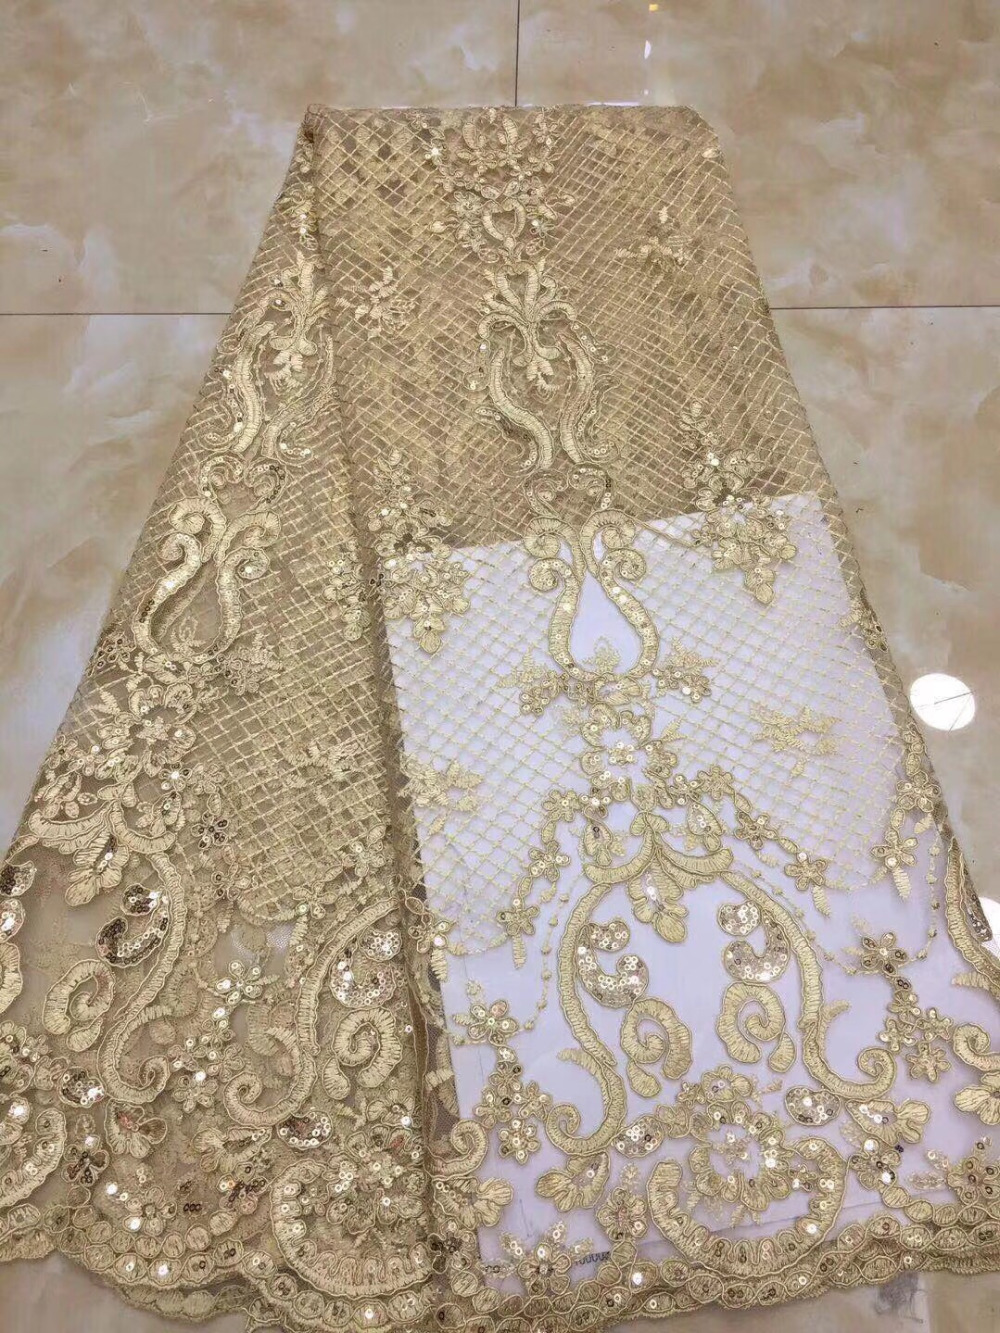 2018 Fashion African Lace Fabric Gold Sequins Materials French lace Nigerian Tulle Lace Fabric For Wedding